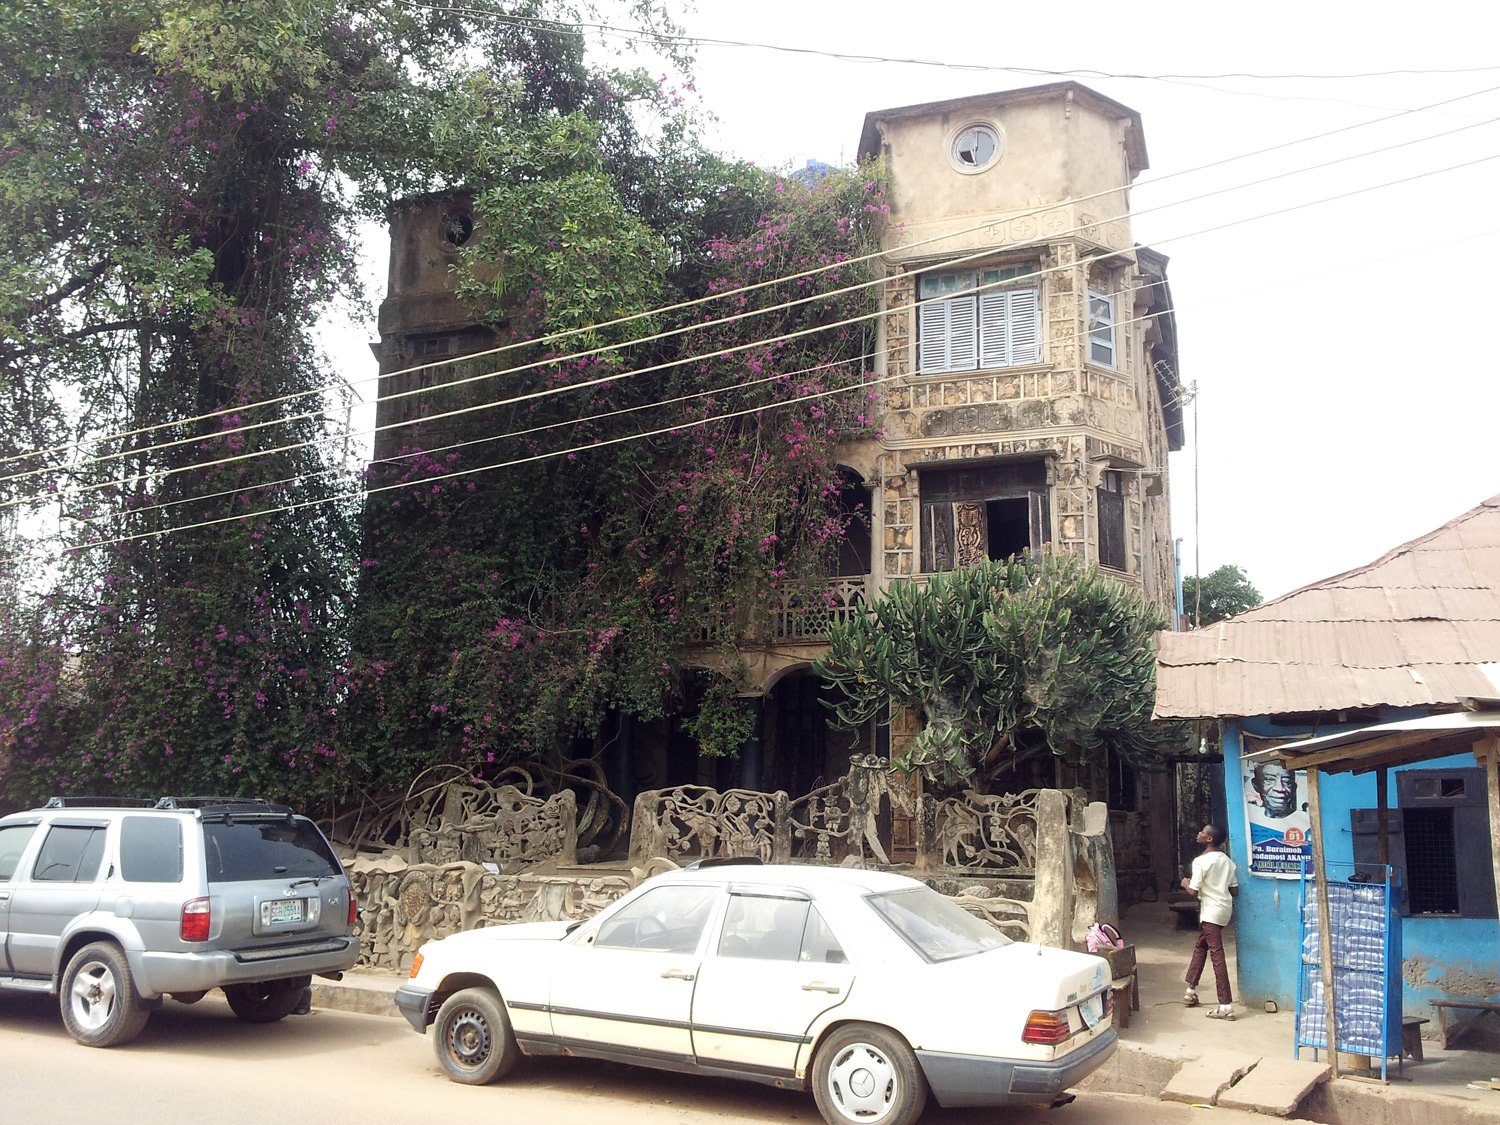 Ibokún Road 41A, Òṣogbo, 2015, the house where Susanne Wenger lived. A rare example of afro-brazilian architecture, influenced by thousands of returned slaves from the mid to the end of the 19th century, called the Aguda people in Nigeria.